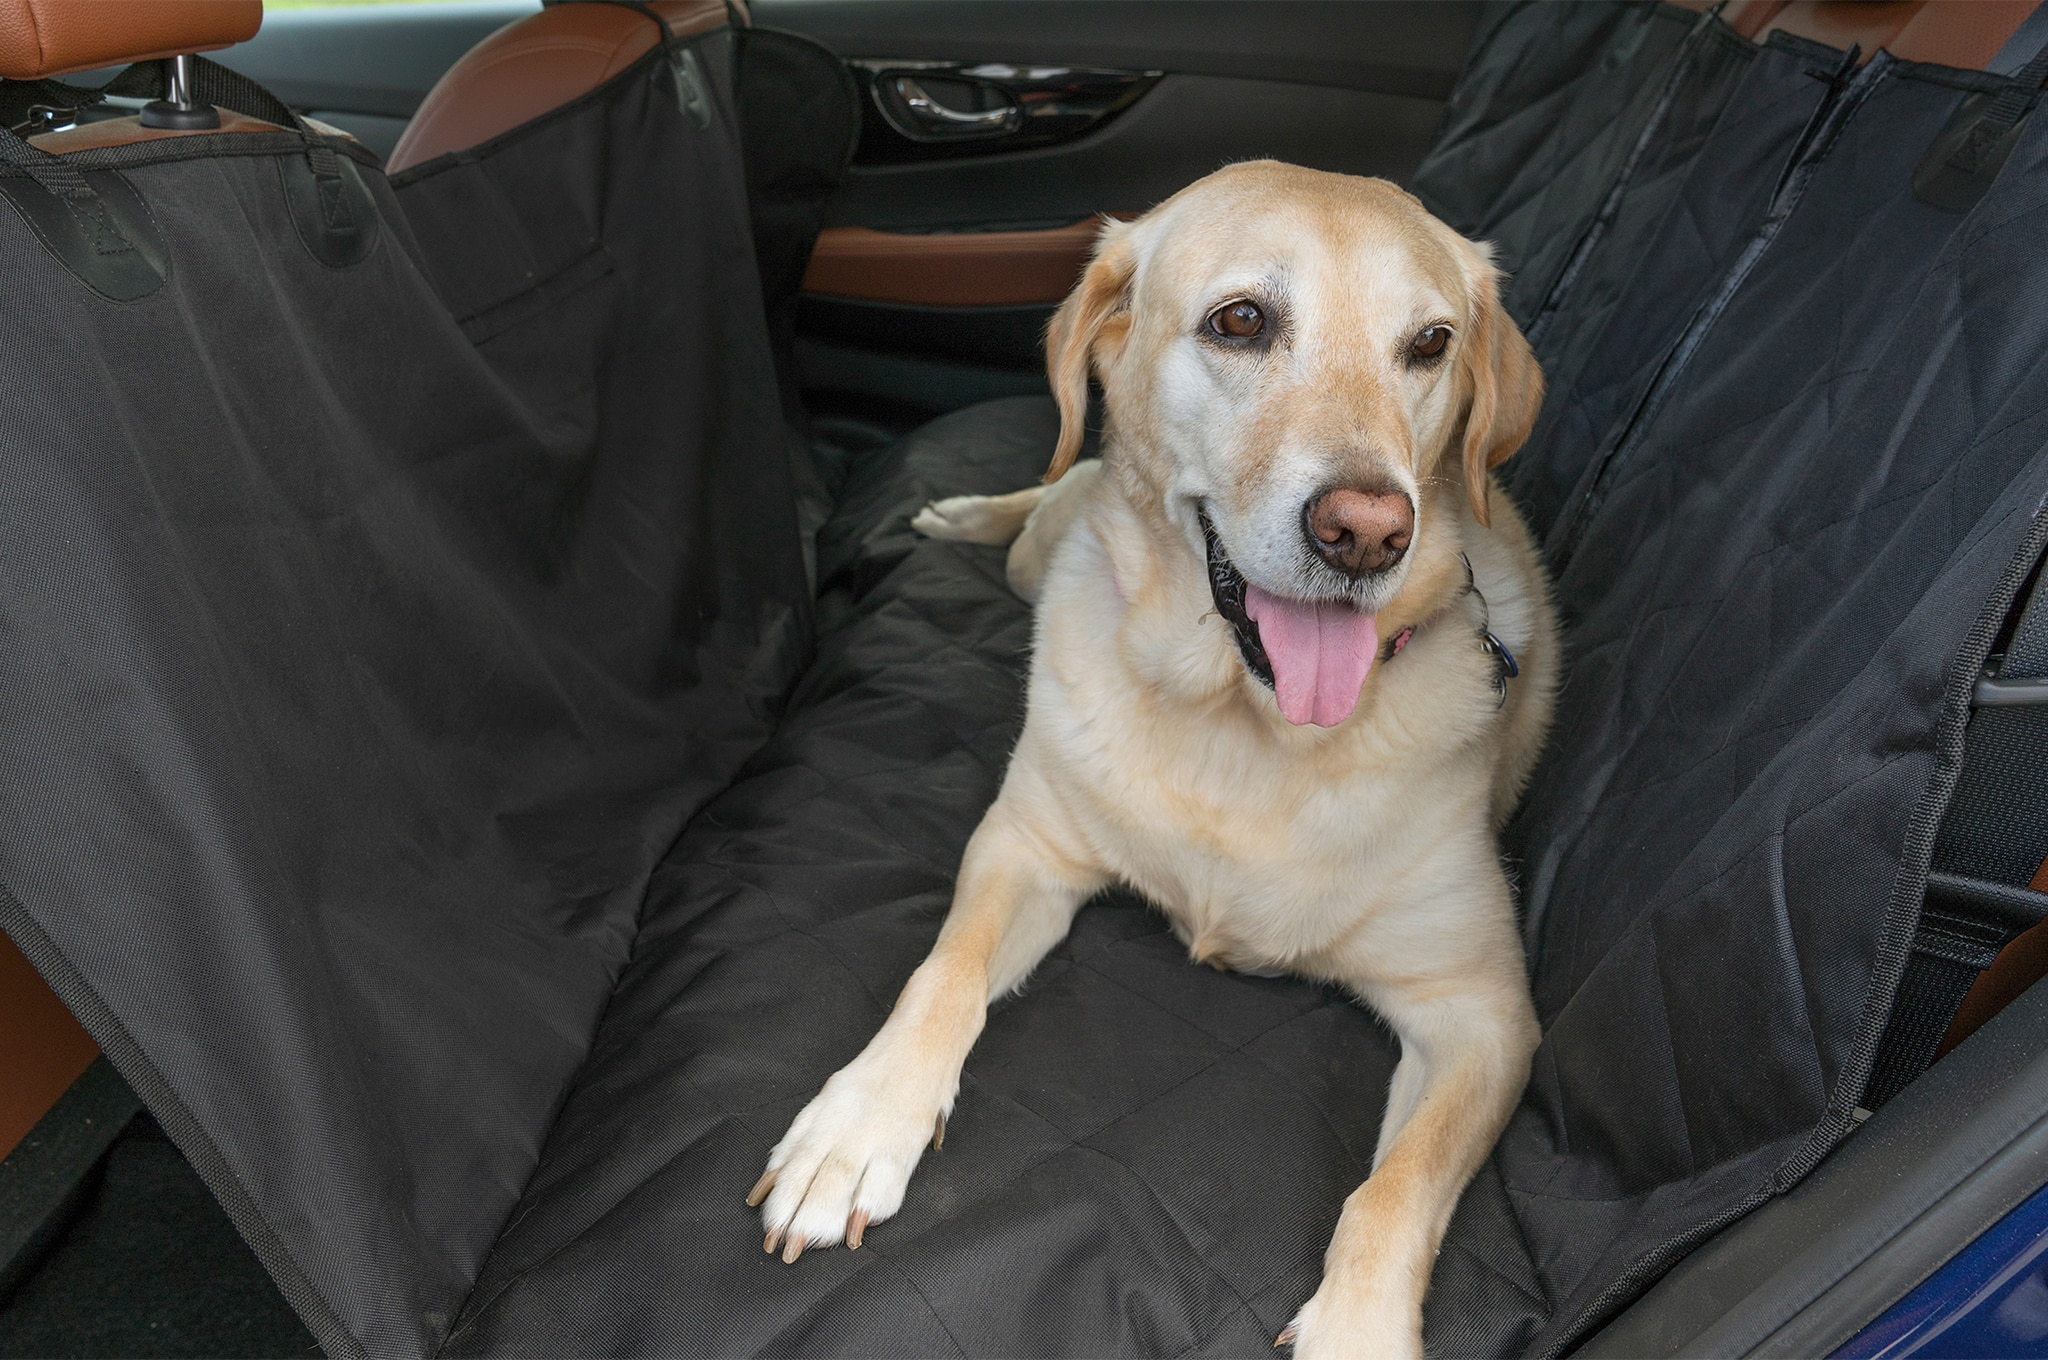 2017-Nissan-Rogue-Dogue-project-vehicle-pooch-relaxing-in-the-back-seat-01-1